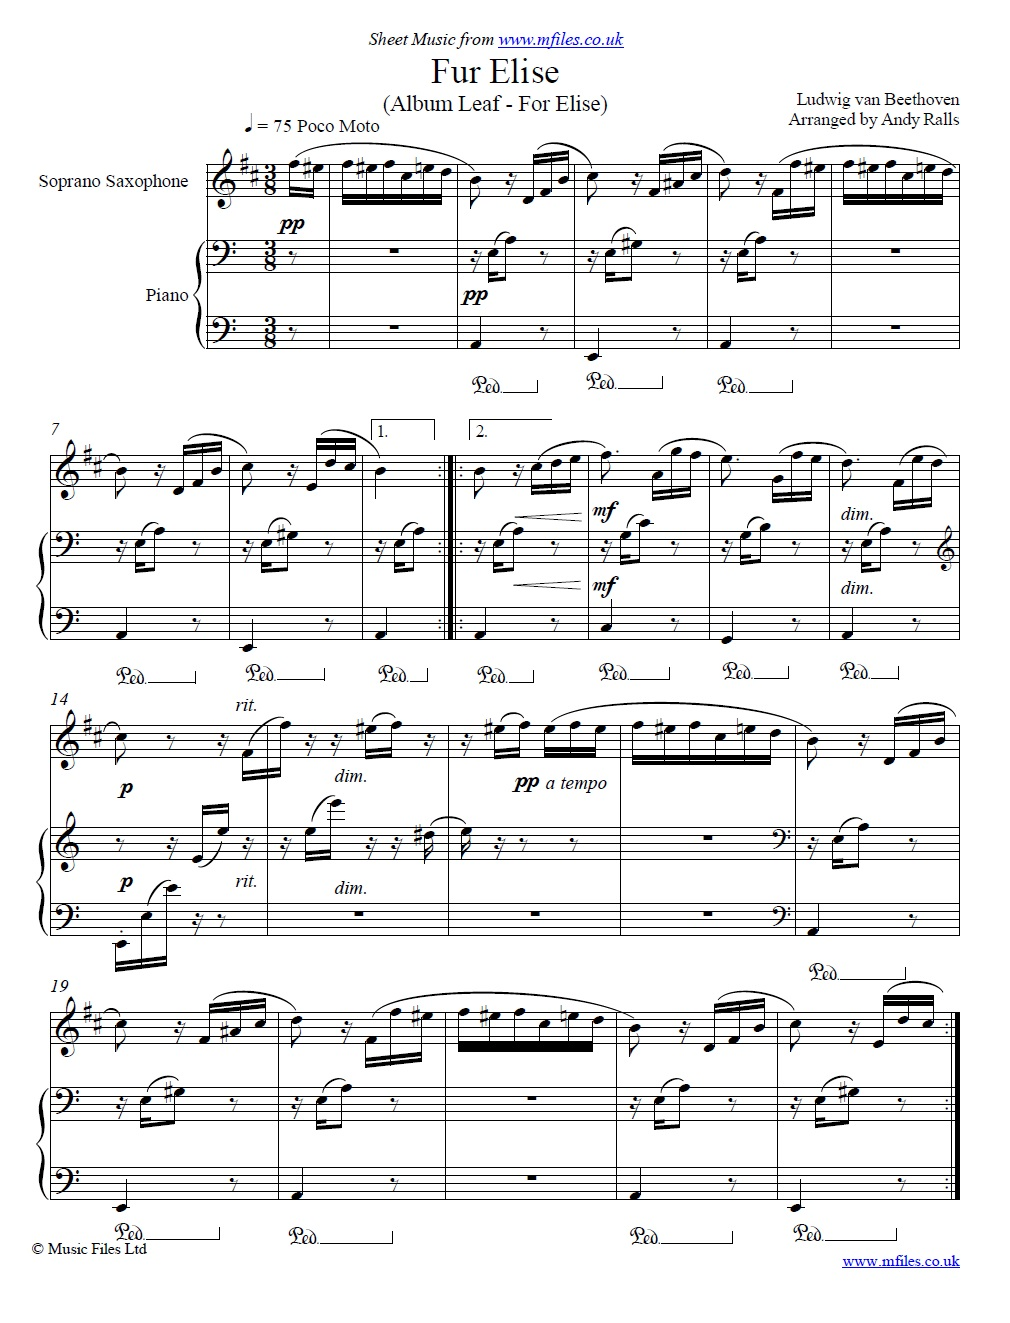 Beethoven's Fur Elise for soprano sax and piano - sheet music 1st page